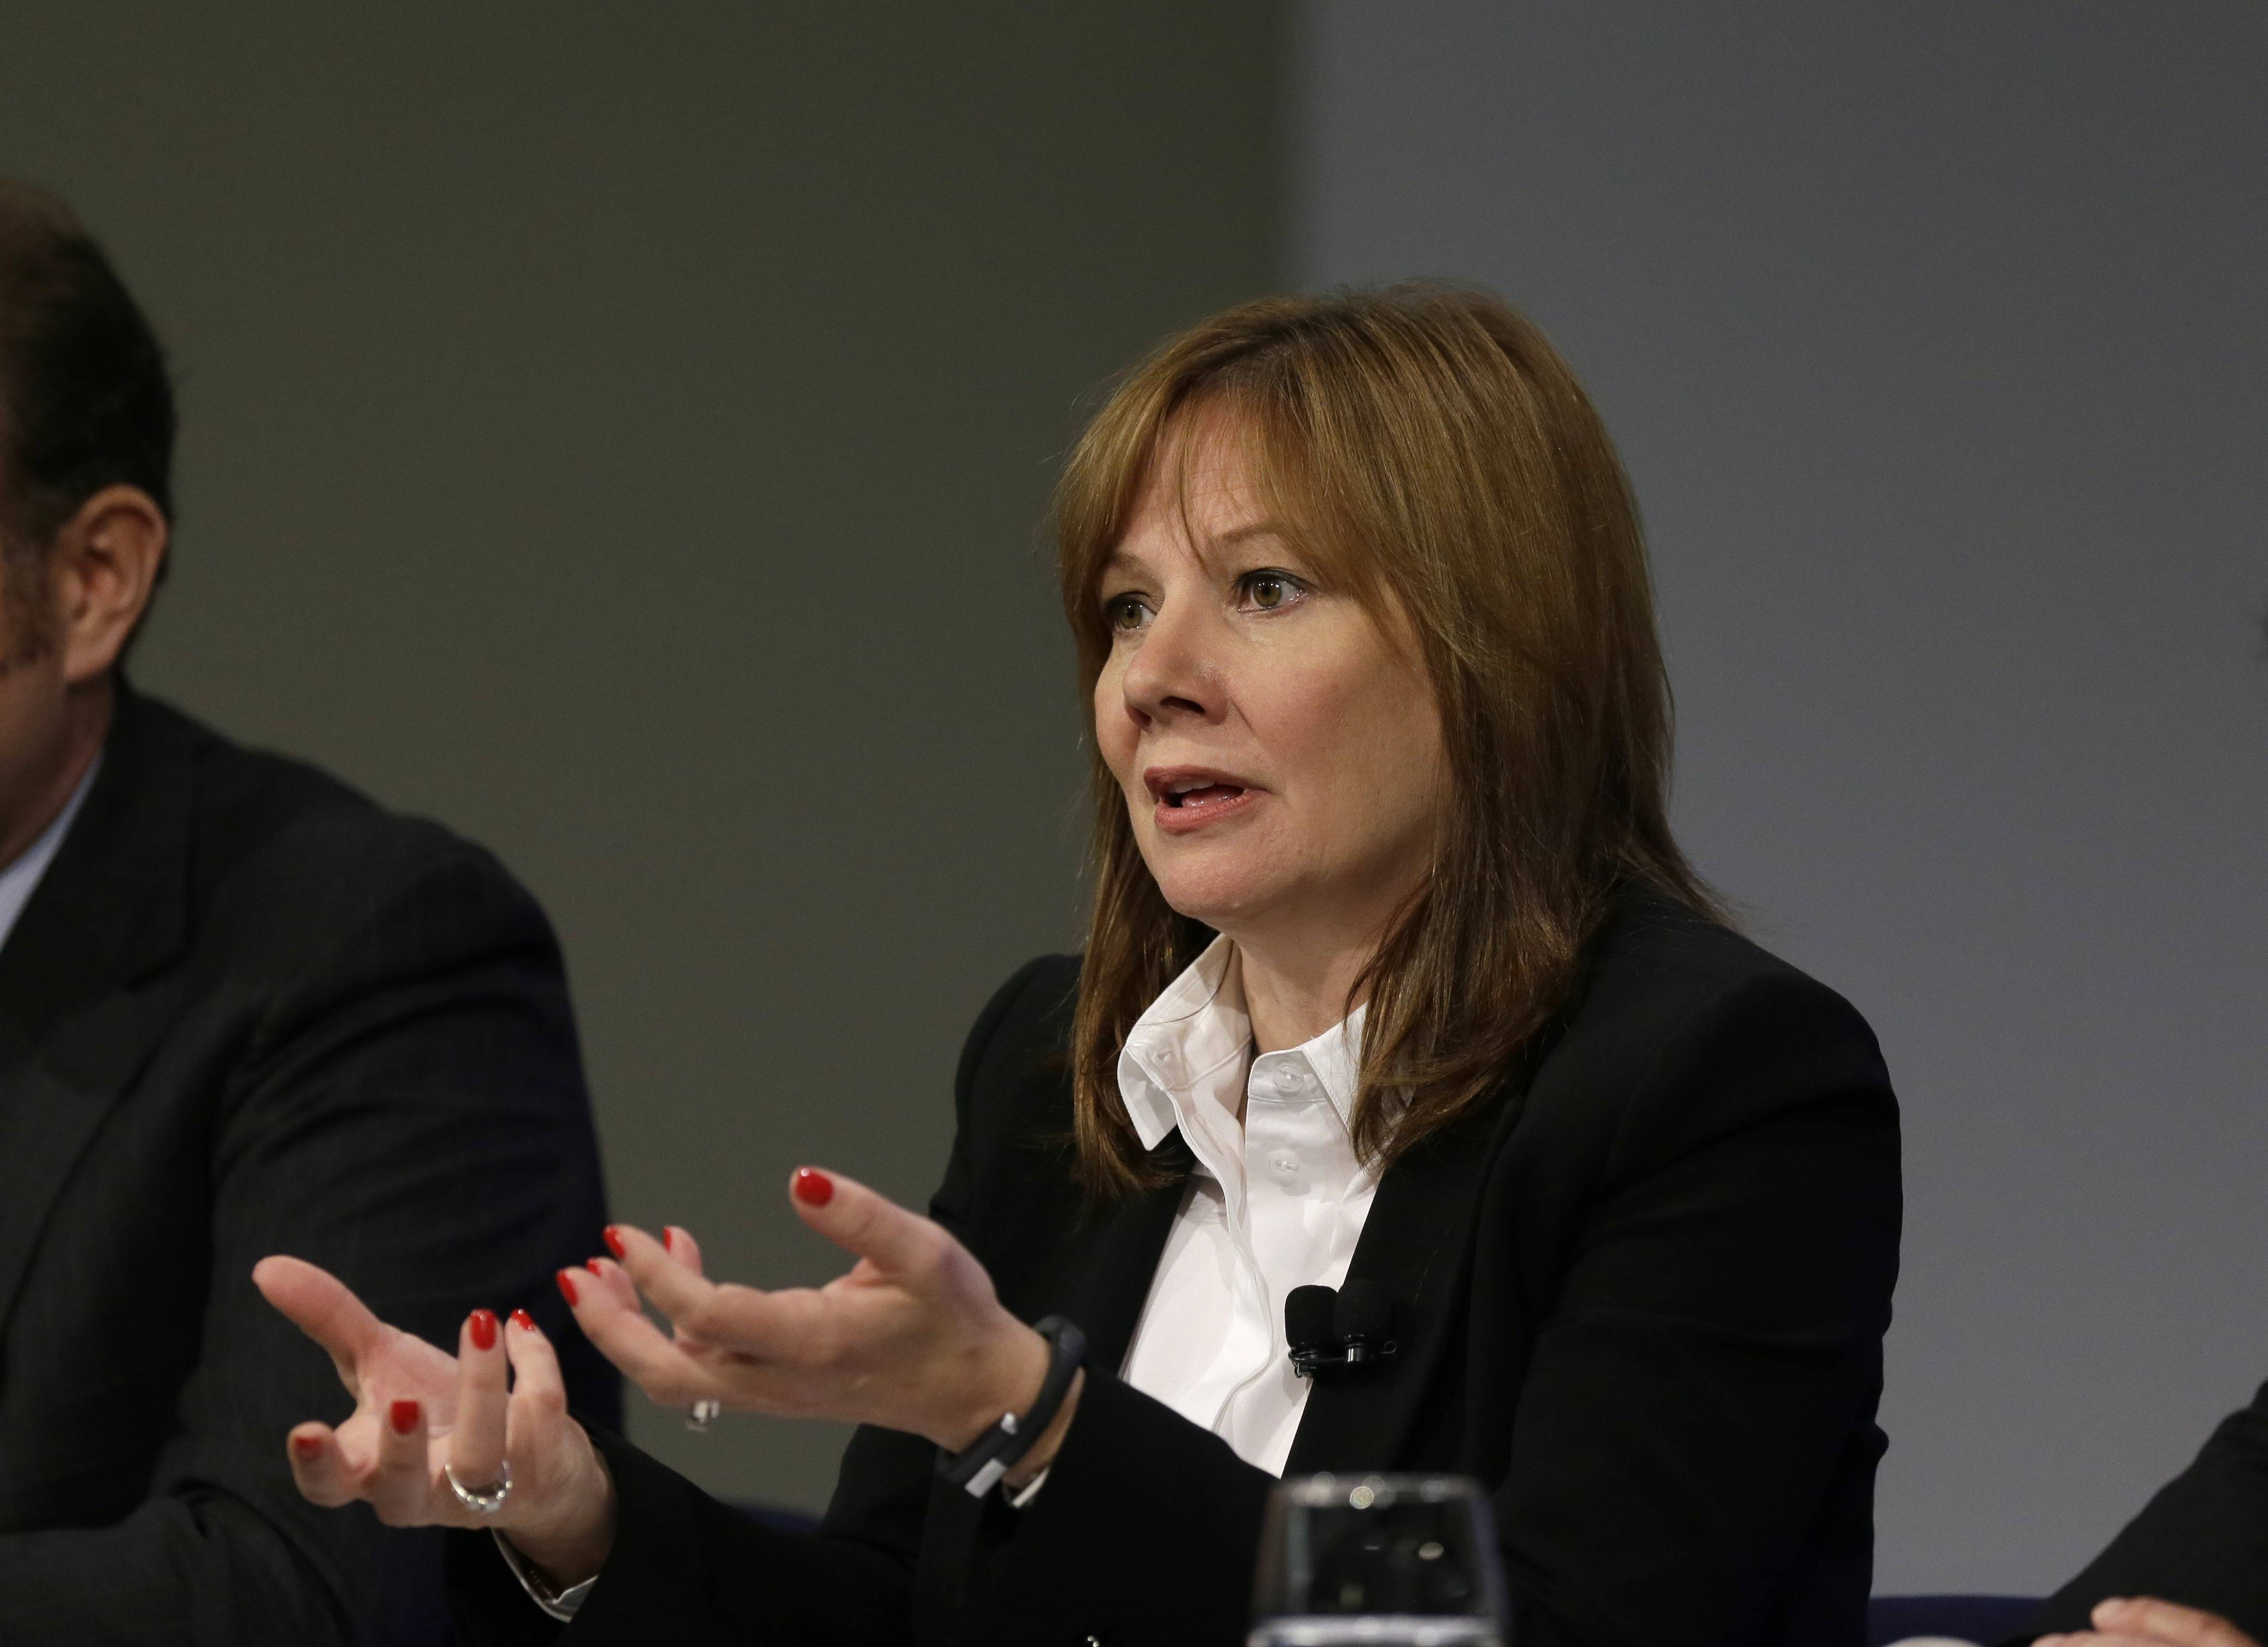 General Motors CEO Mary Barra, seen during a press conference at the General Motors Technical Center in Warren, Mich., Thursday, said 15 employees -- many of them senior legal and engineering executives -- have been forced out for failing to disclose defective ignition switches, which the company links to 13 deaths and 54 crashes in which the air bags didn't deploy.